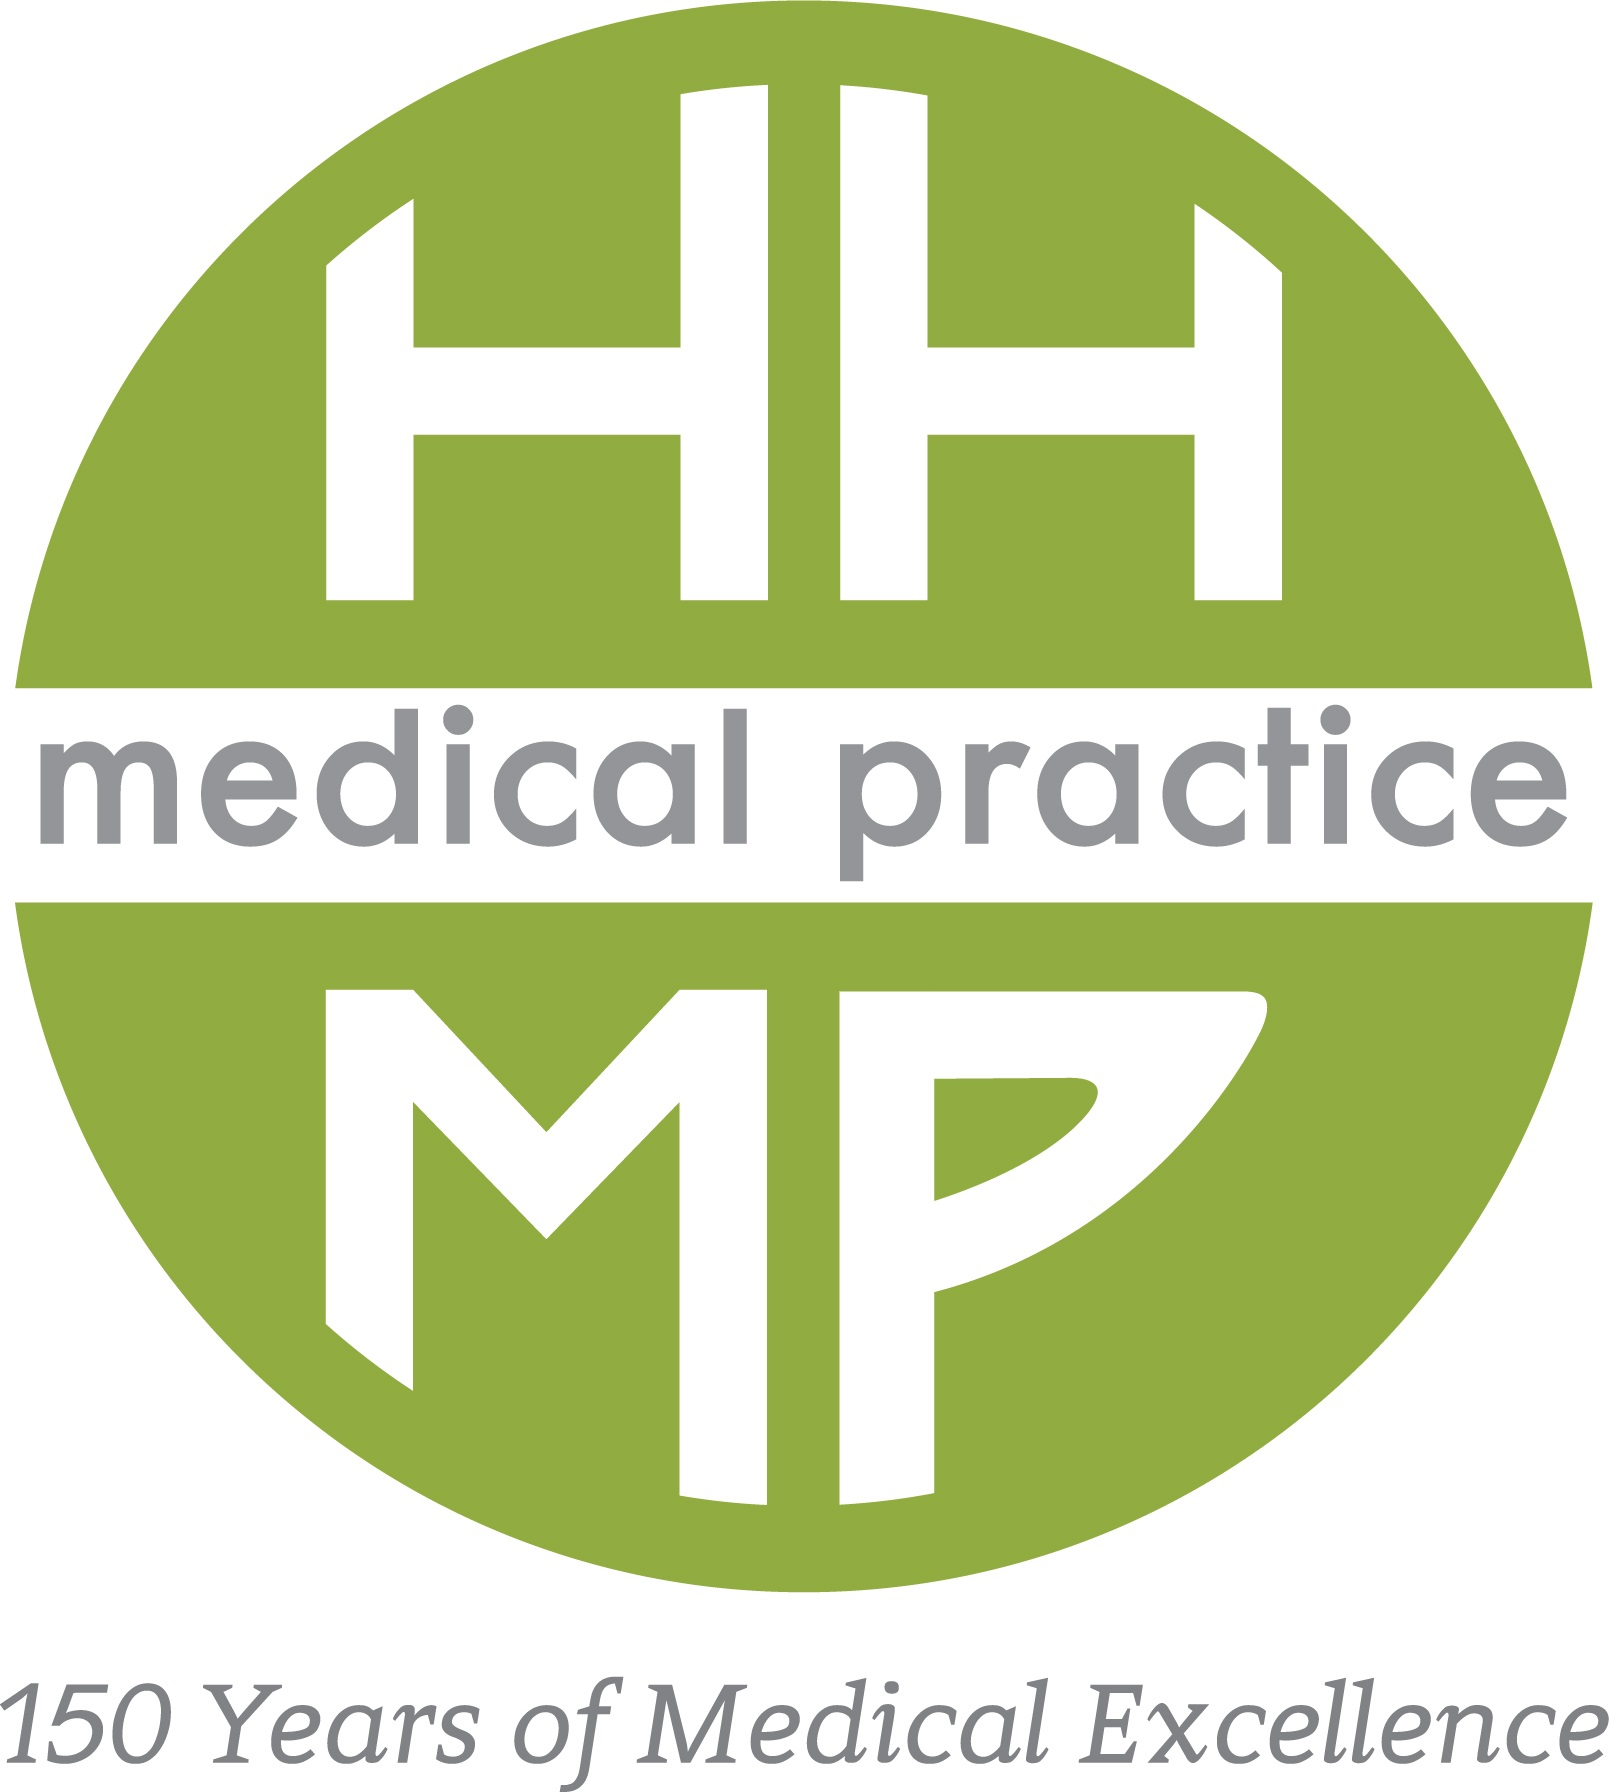 Hunters Hill Medical Practice